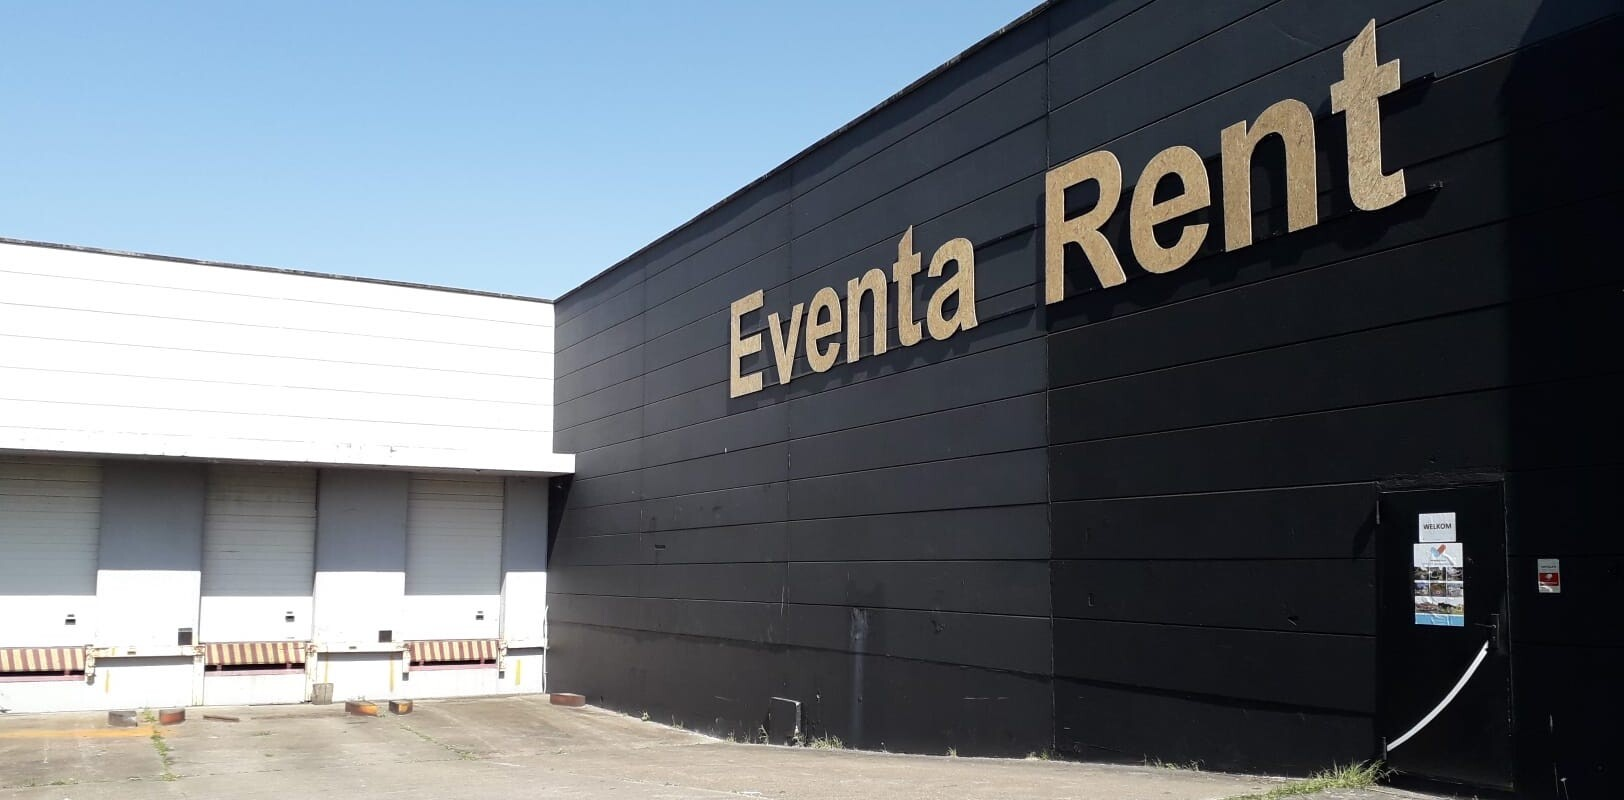 Magazijn eventa Rent in Aartselaar